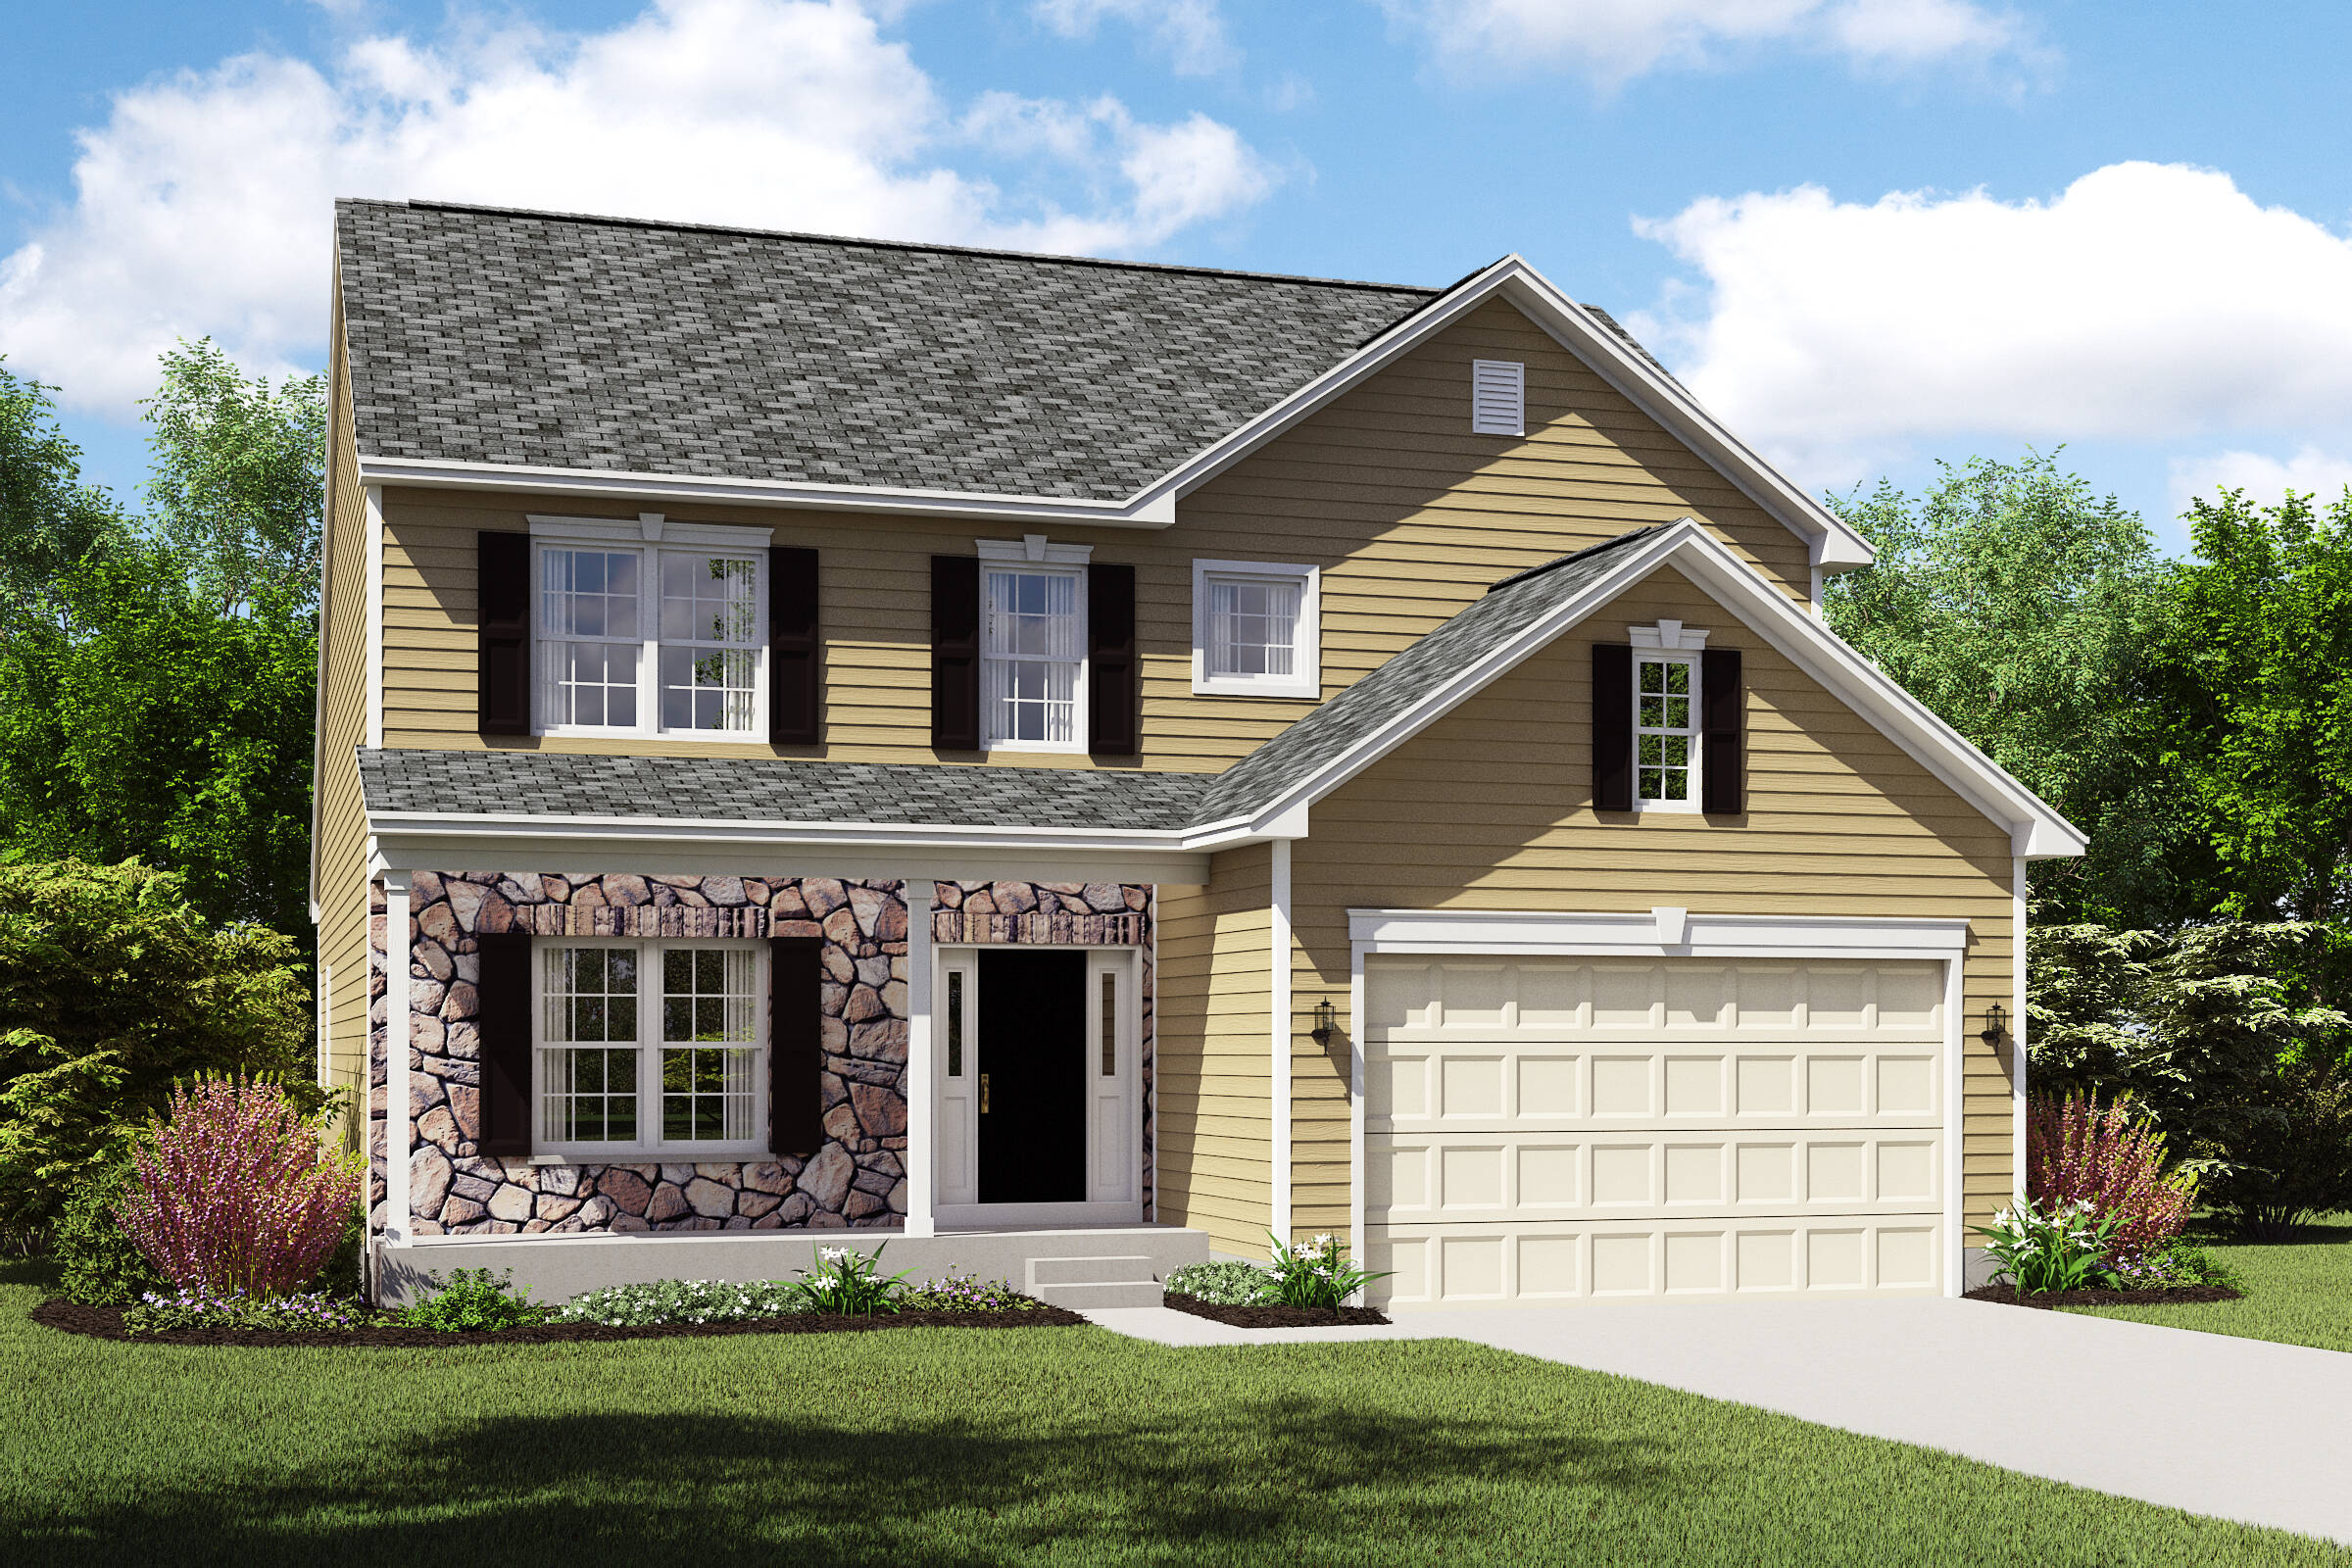 Oakridge-CT meadow lakes new homes near cleveland